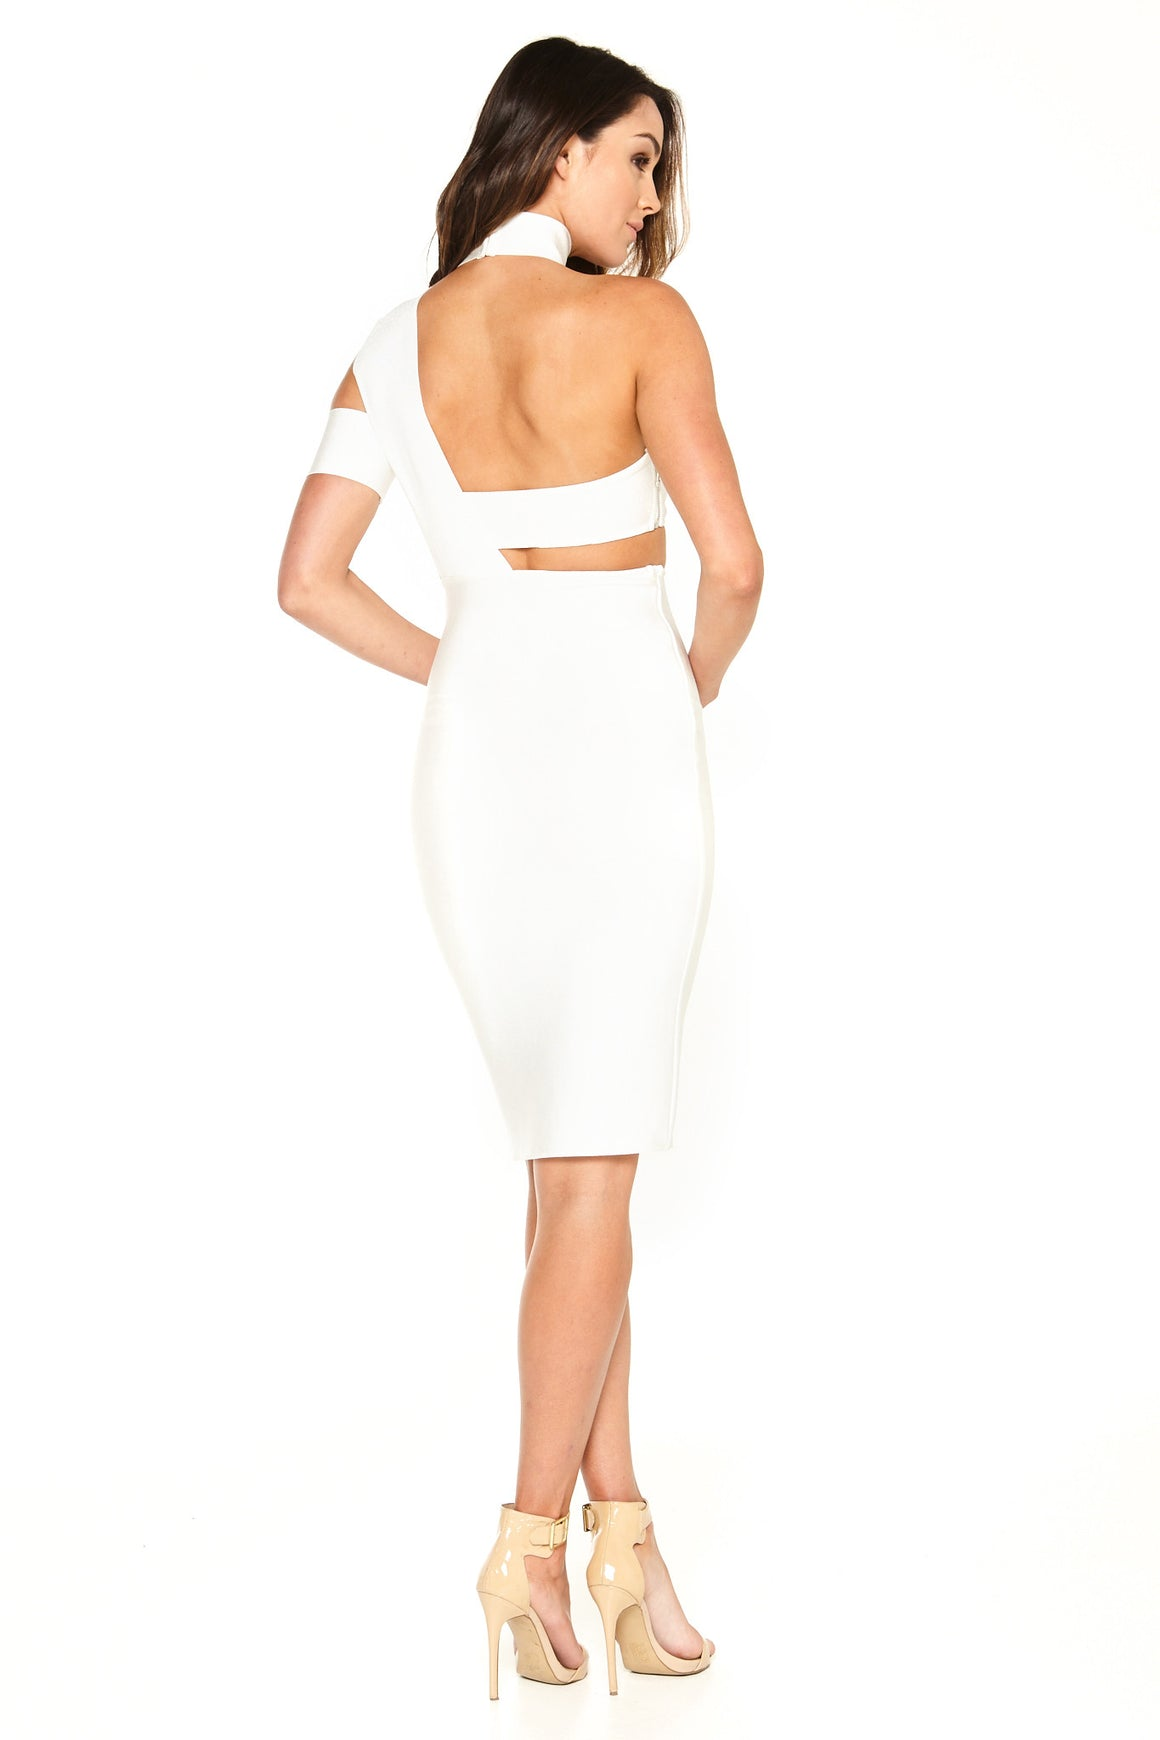 Ella Cutout Bandage Dress - White